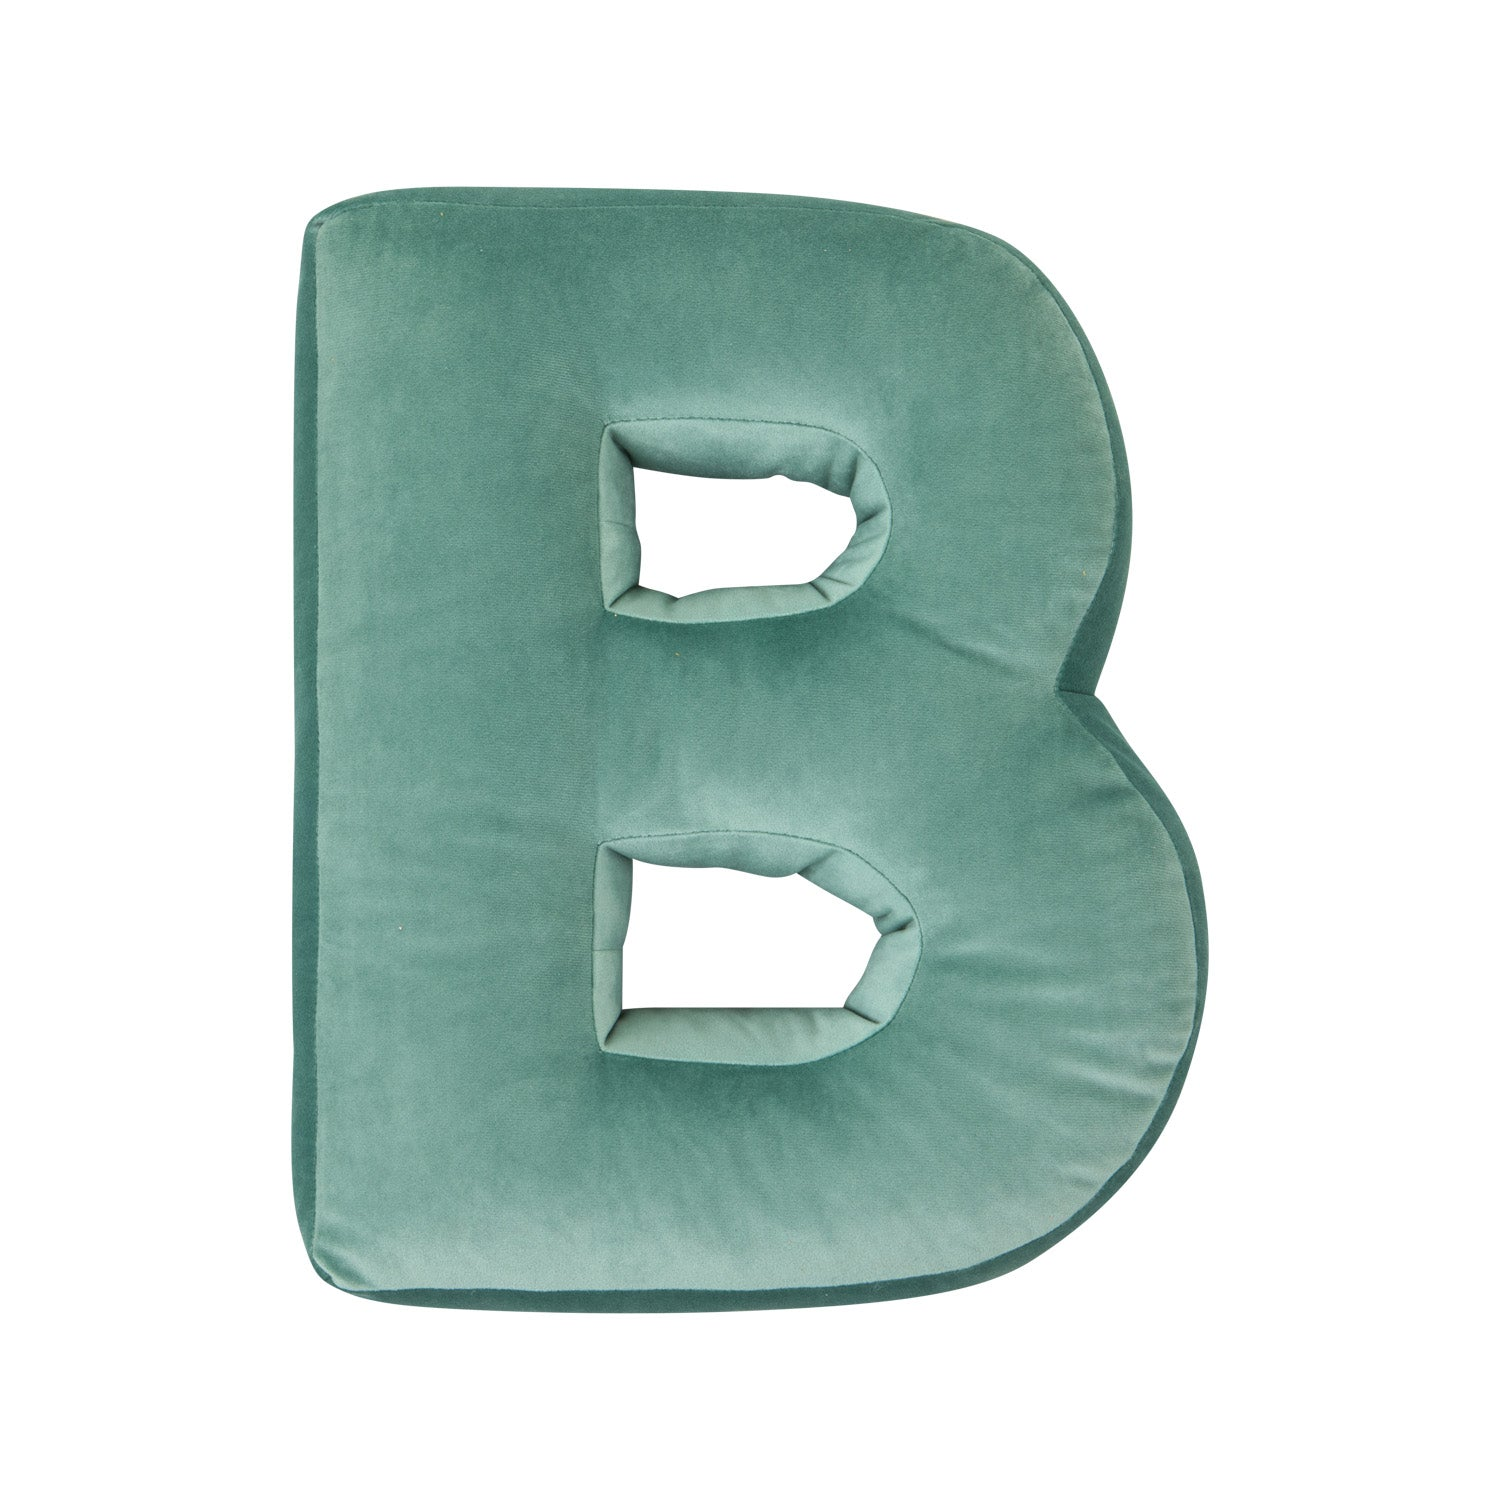 Velvet Letter M Cushion by Betty's Home - Click for colour options!